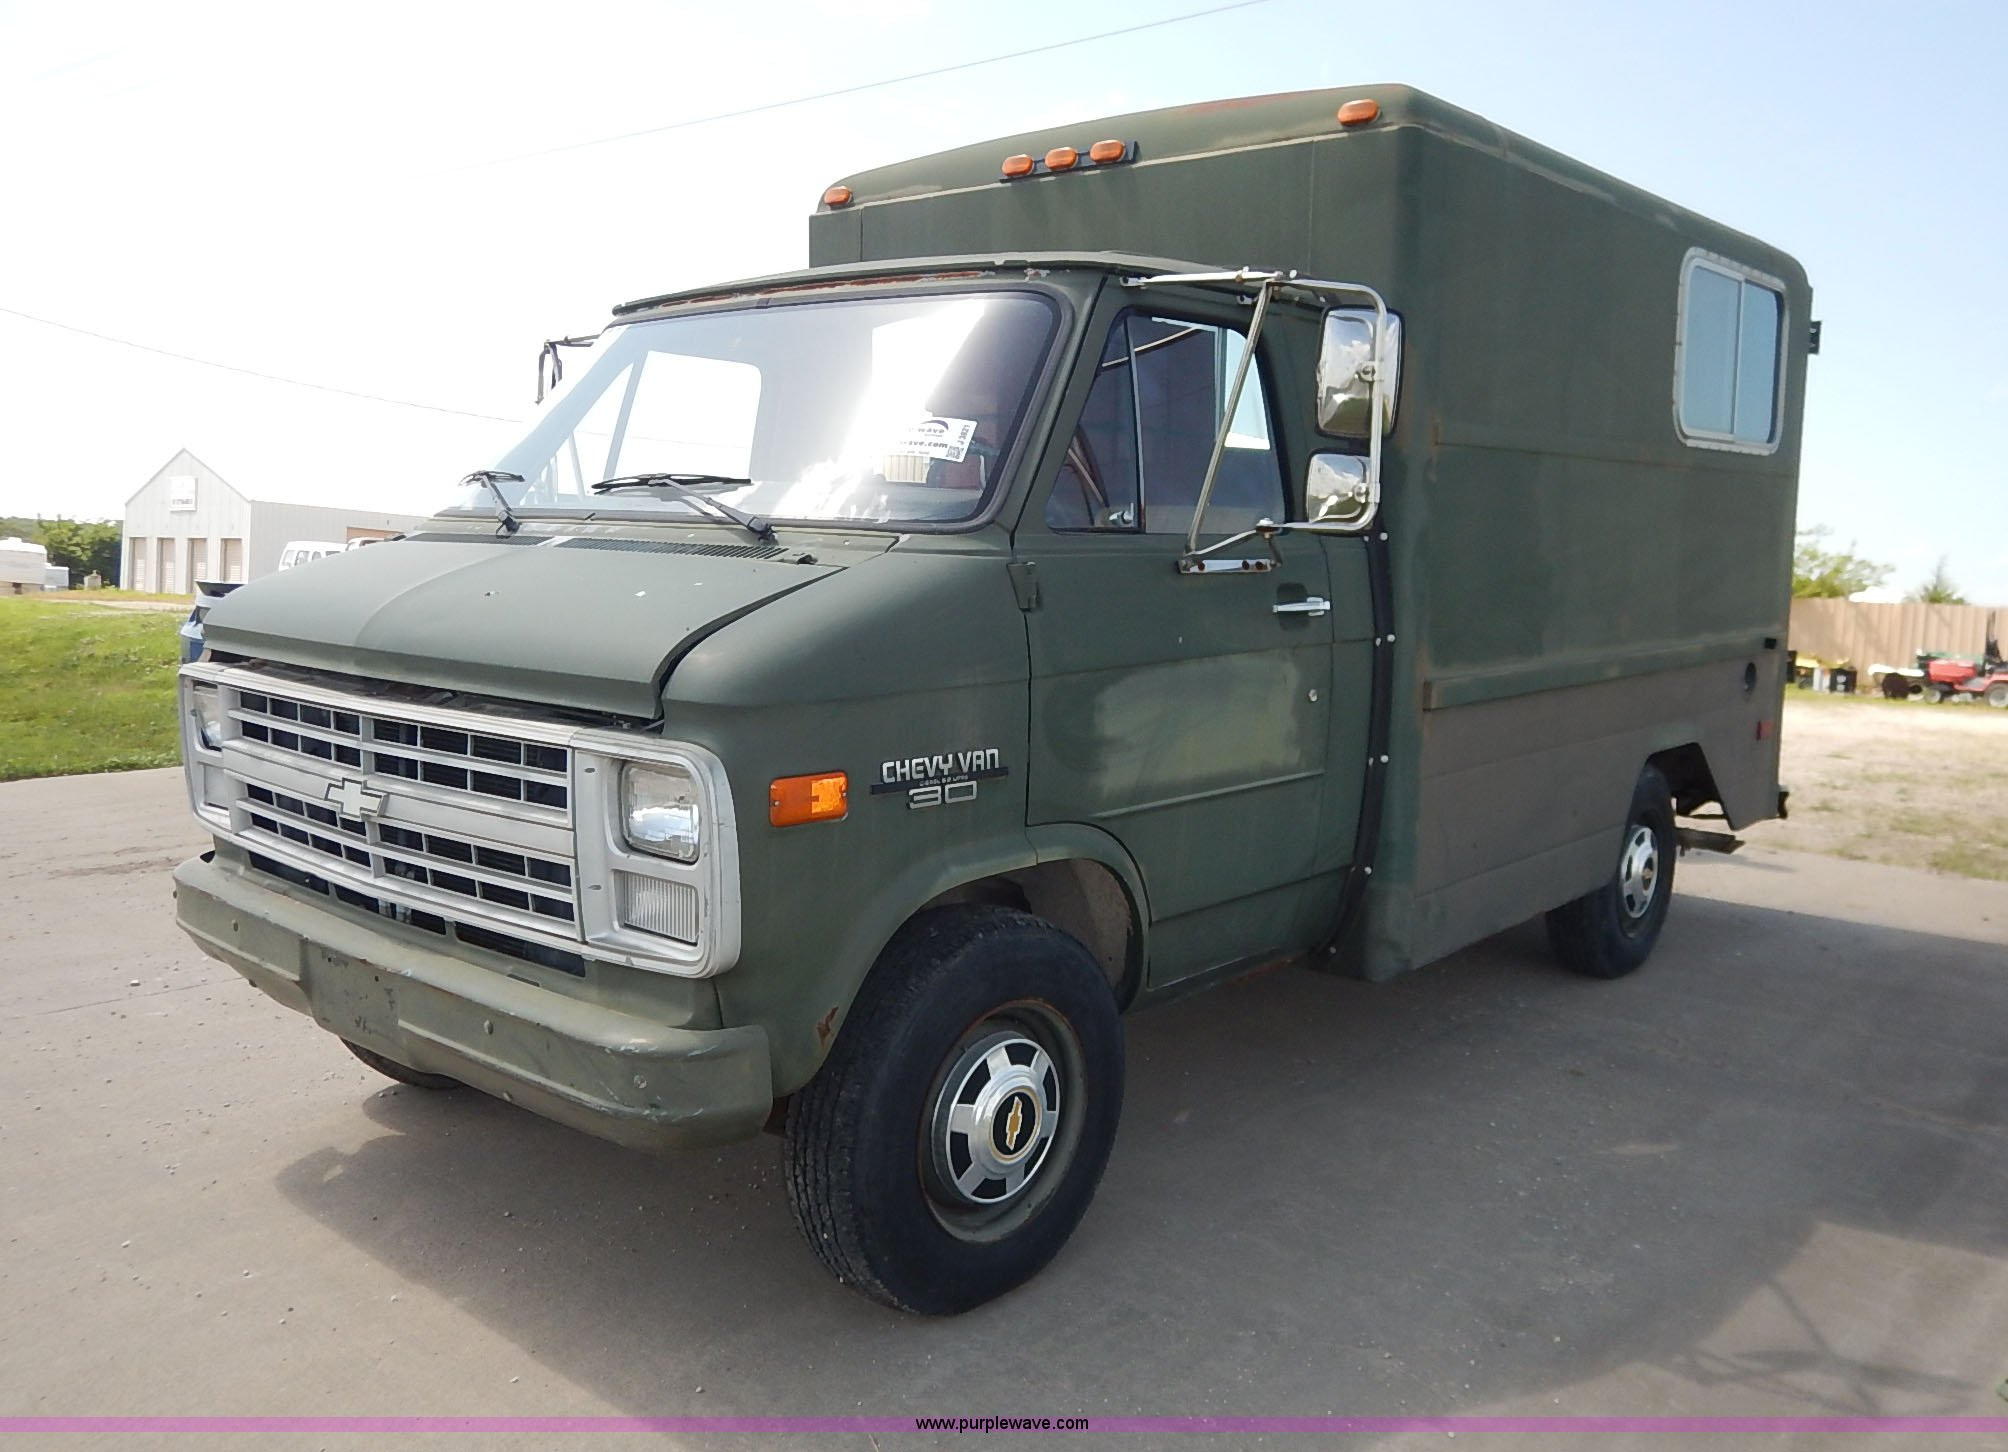 5614d1dce3 ... 1986 Chevrolet G30 cargo van Full size in new window ...